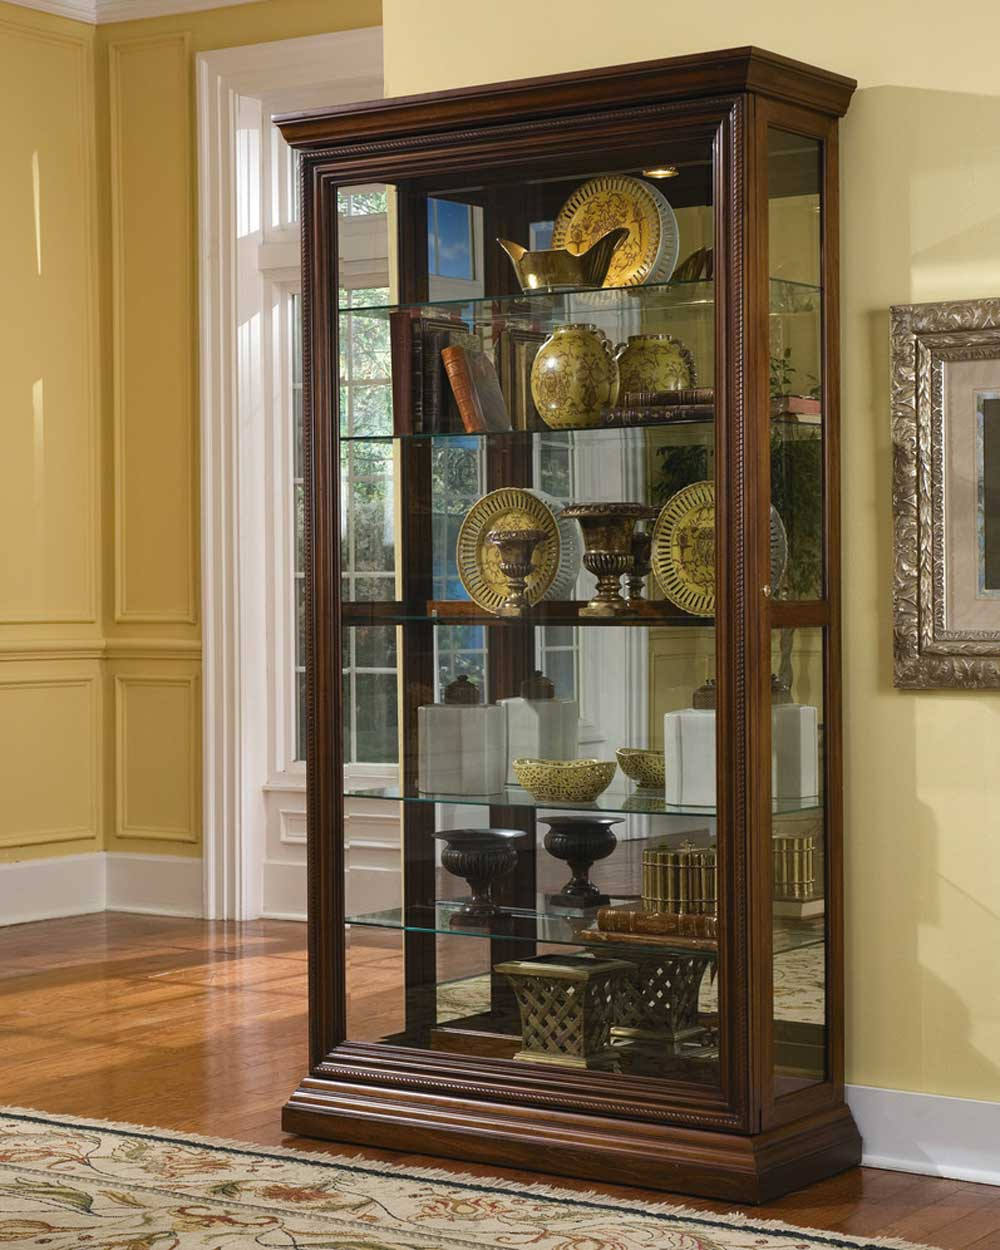 Pulaski Cherry Edwardian Curio Cabinets with Two Way Sliding Door